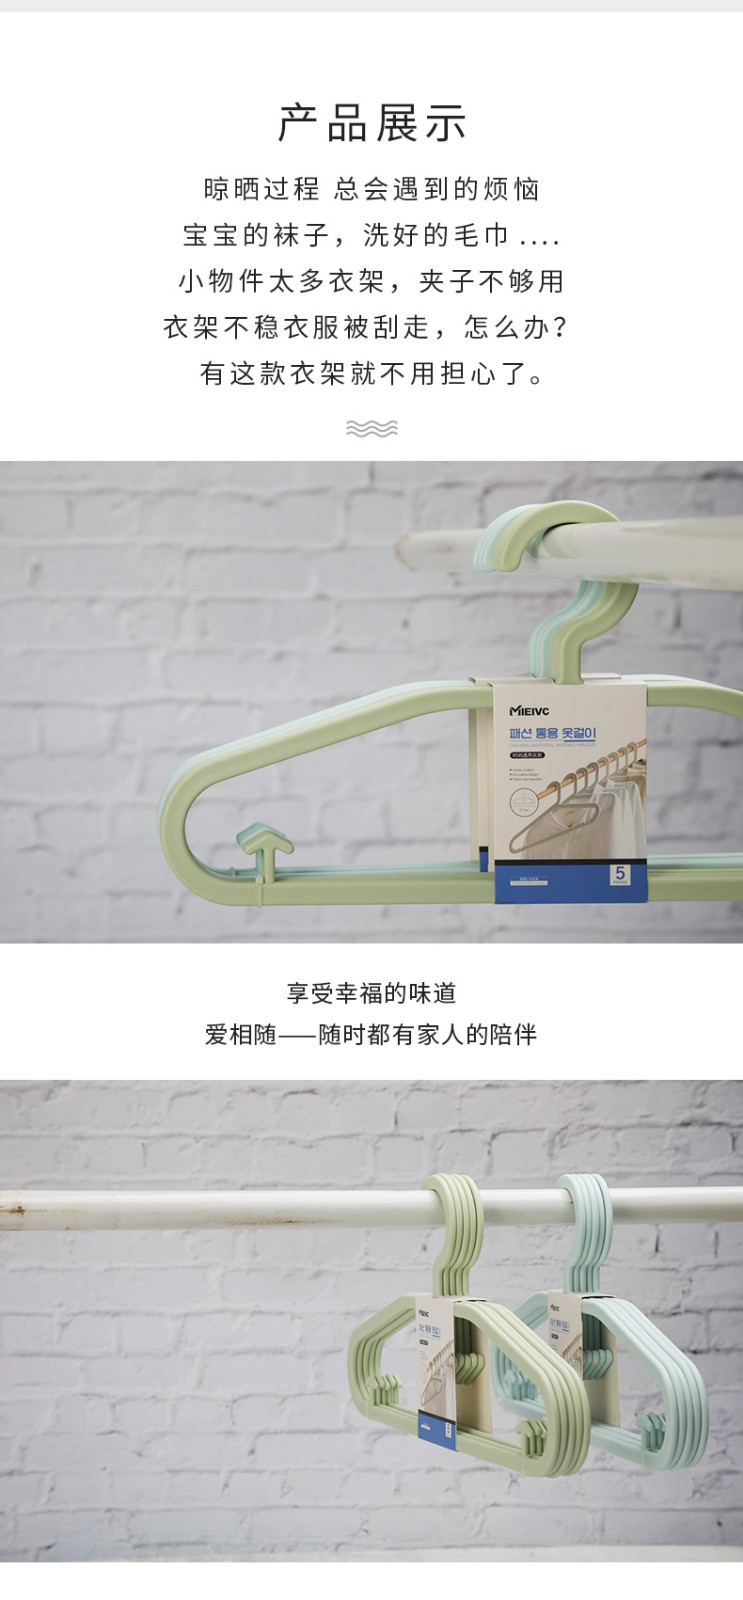 YZ Universal Hanger (5 pieces) 8071 656775 MIEVIC/米薇可